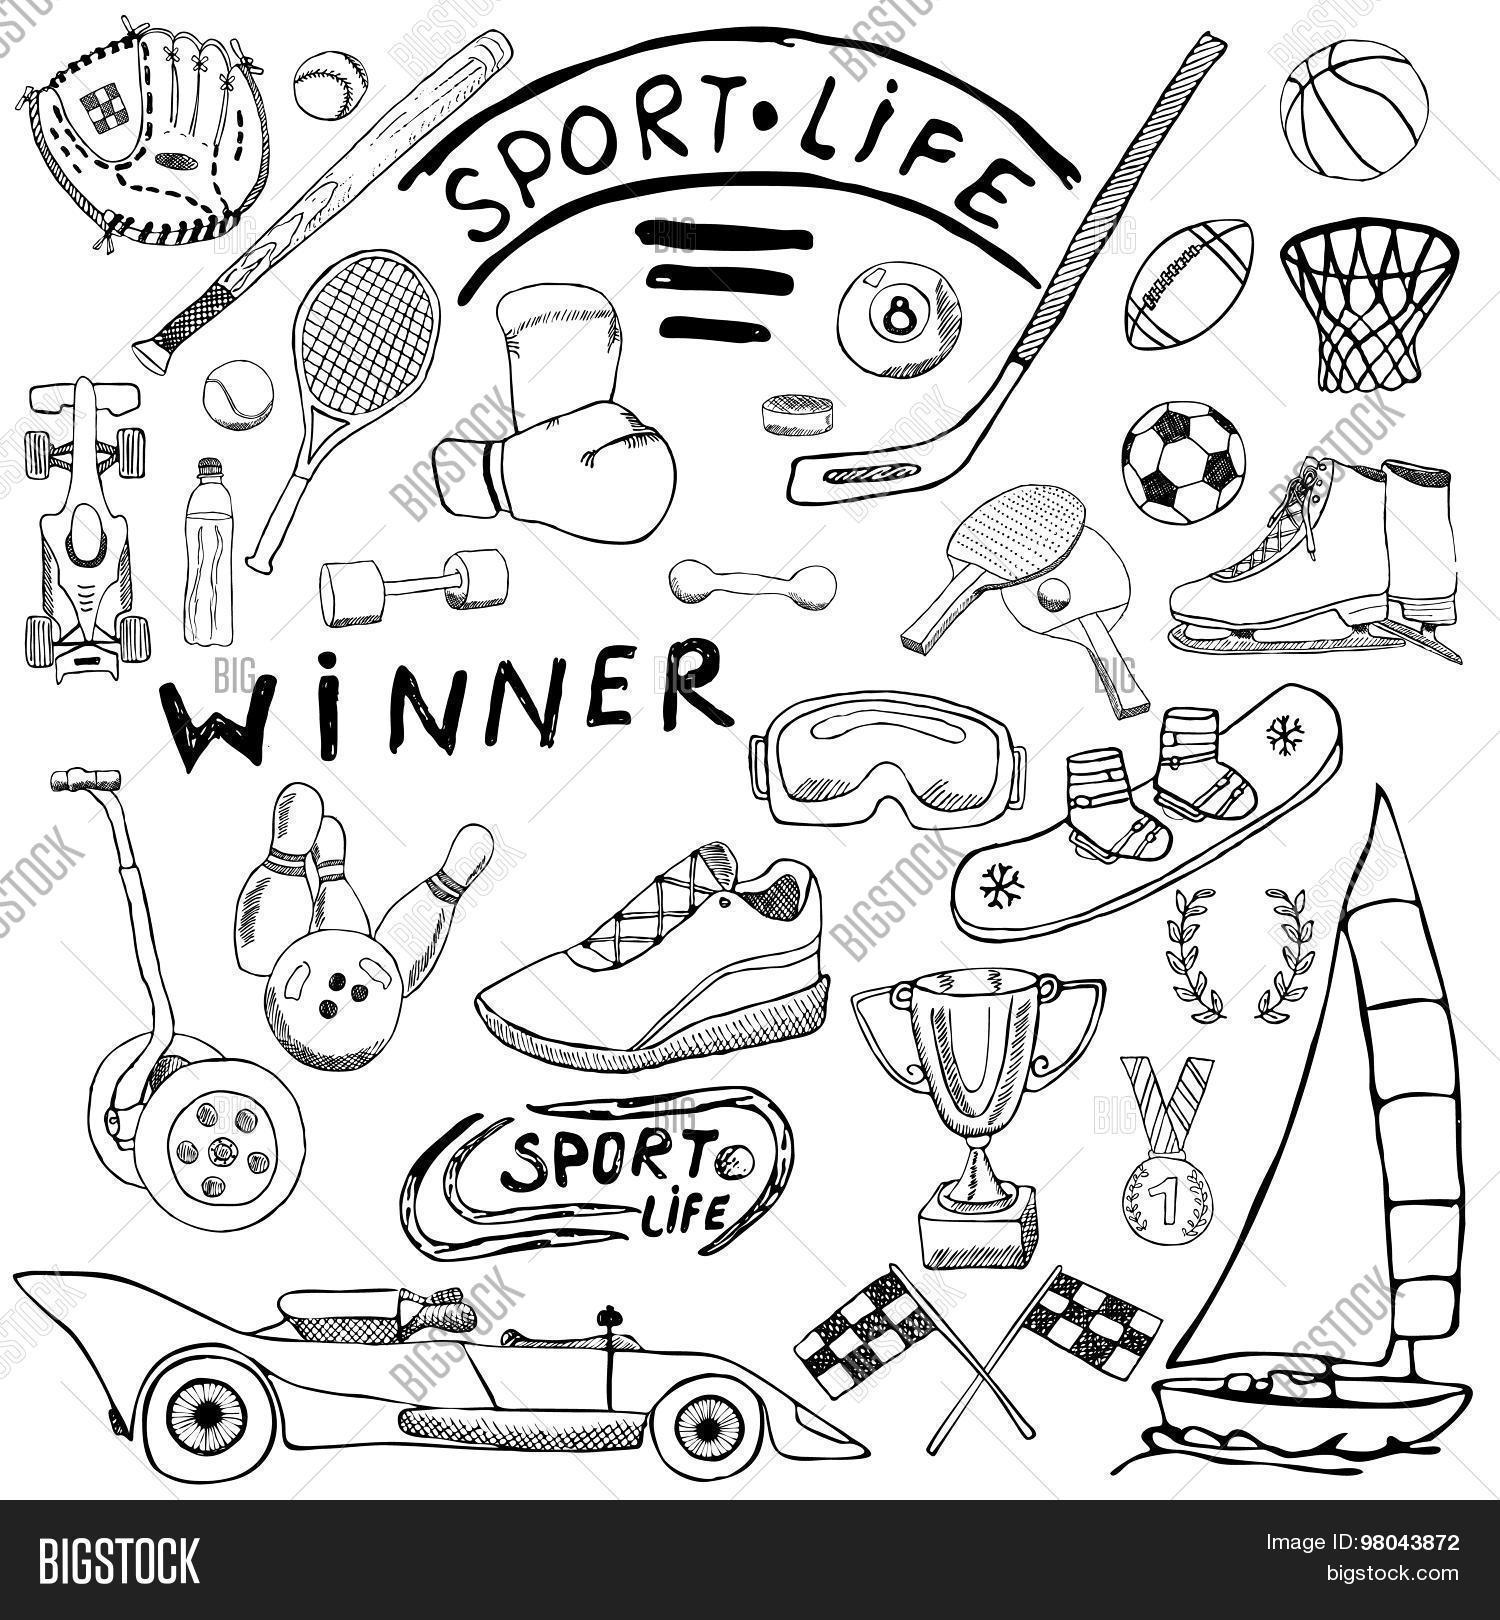 Sport Life Sketch Vector & Photo (Free Trial) | Bigstock